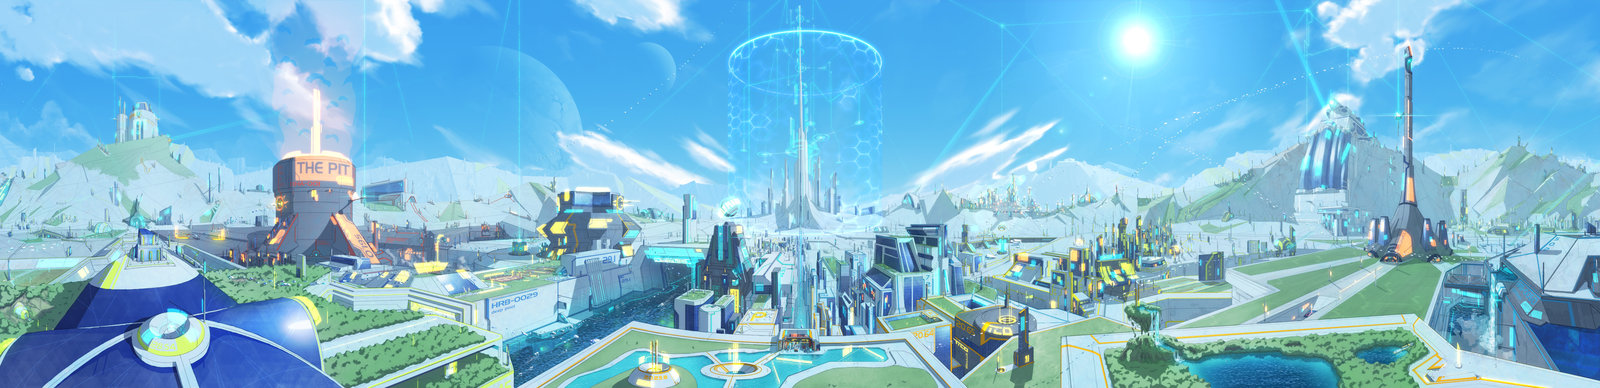 Sci-Fi City Backgrounds